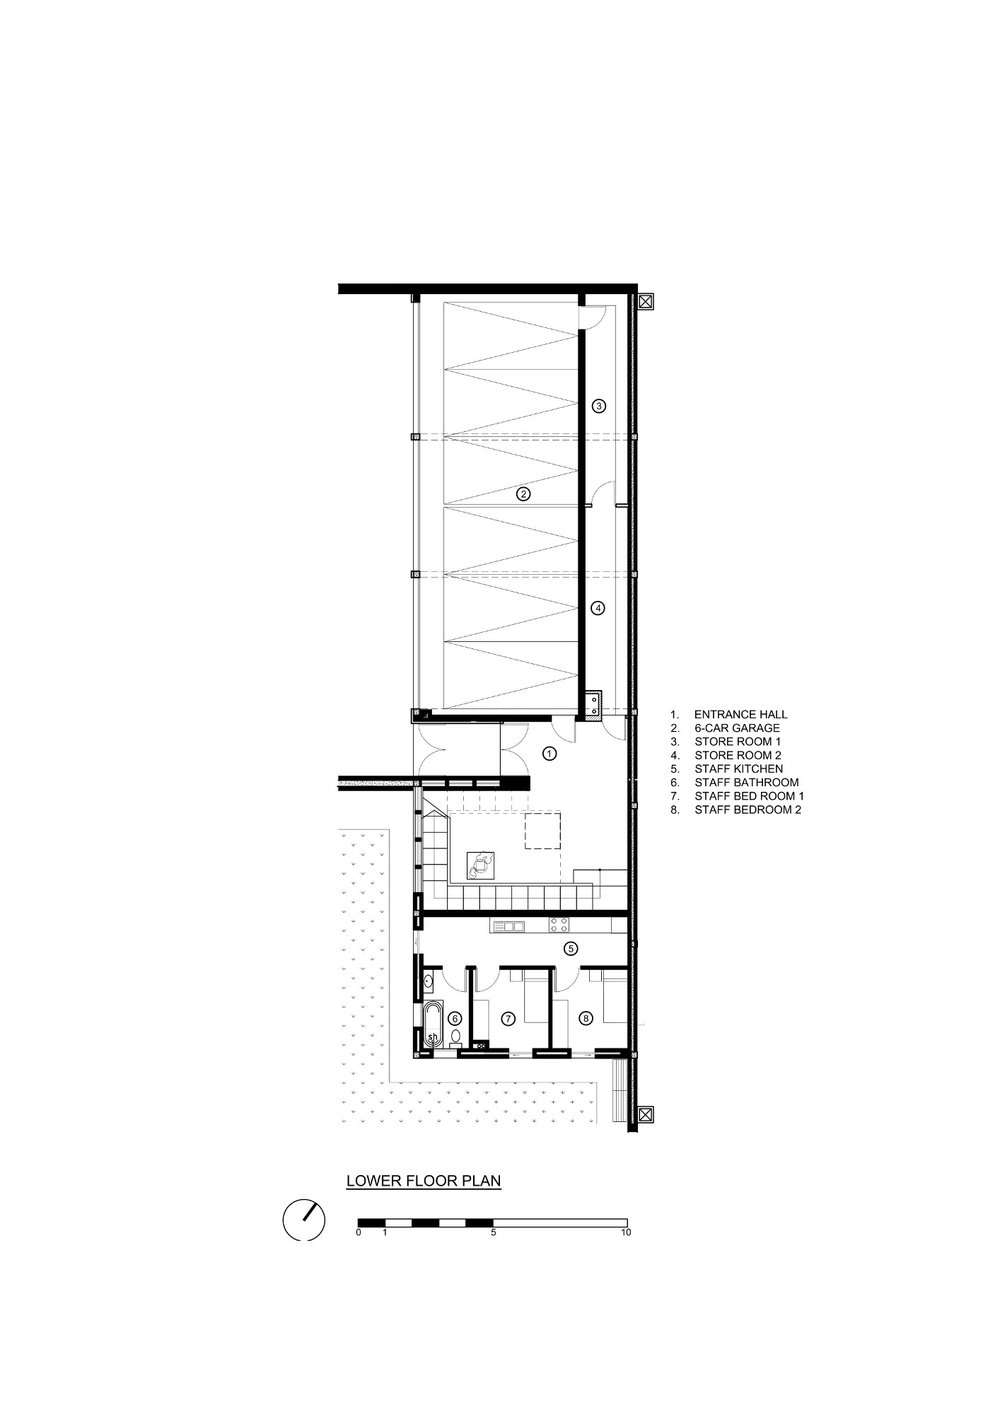 LOWER FLOOR PLAN small.jpg